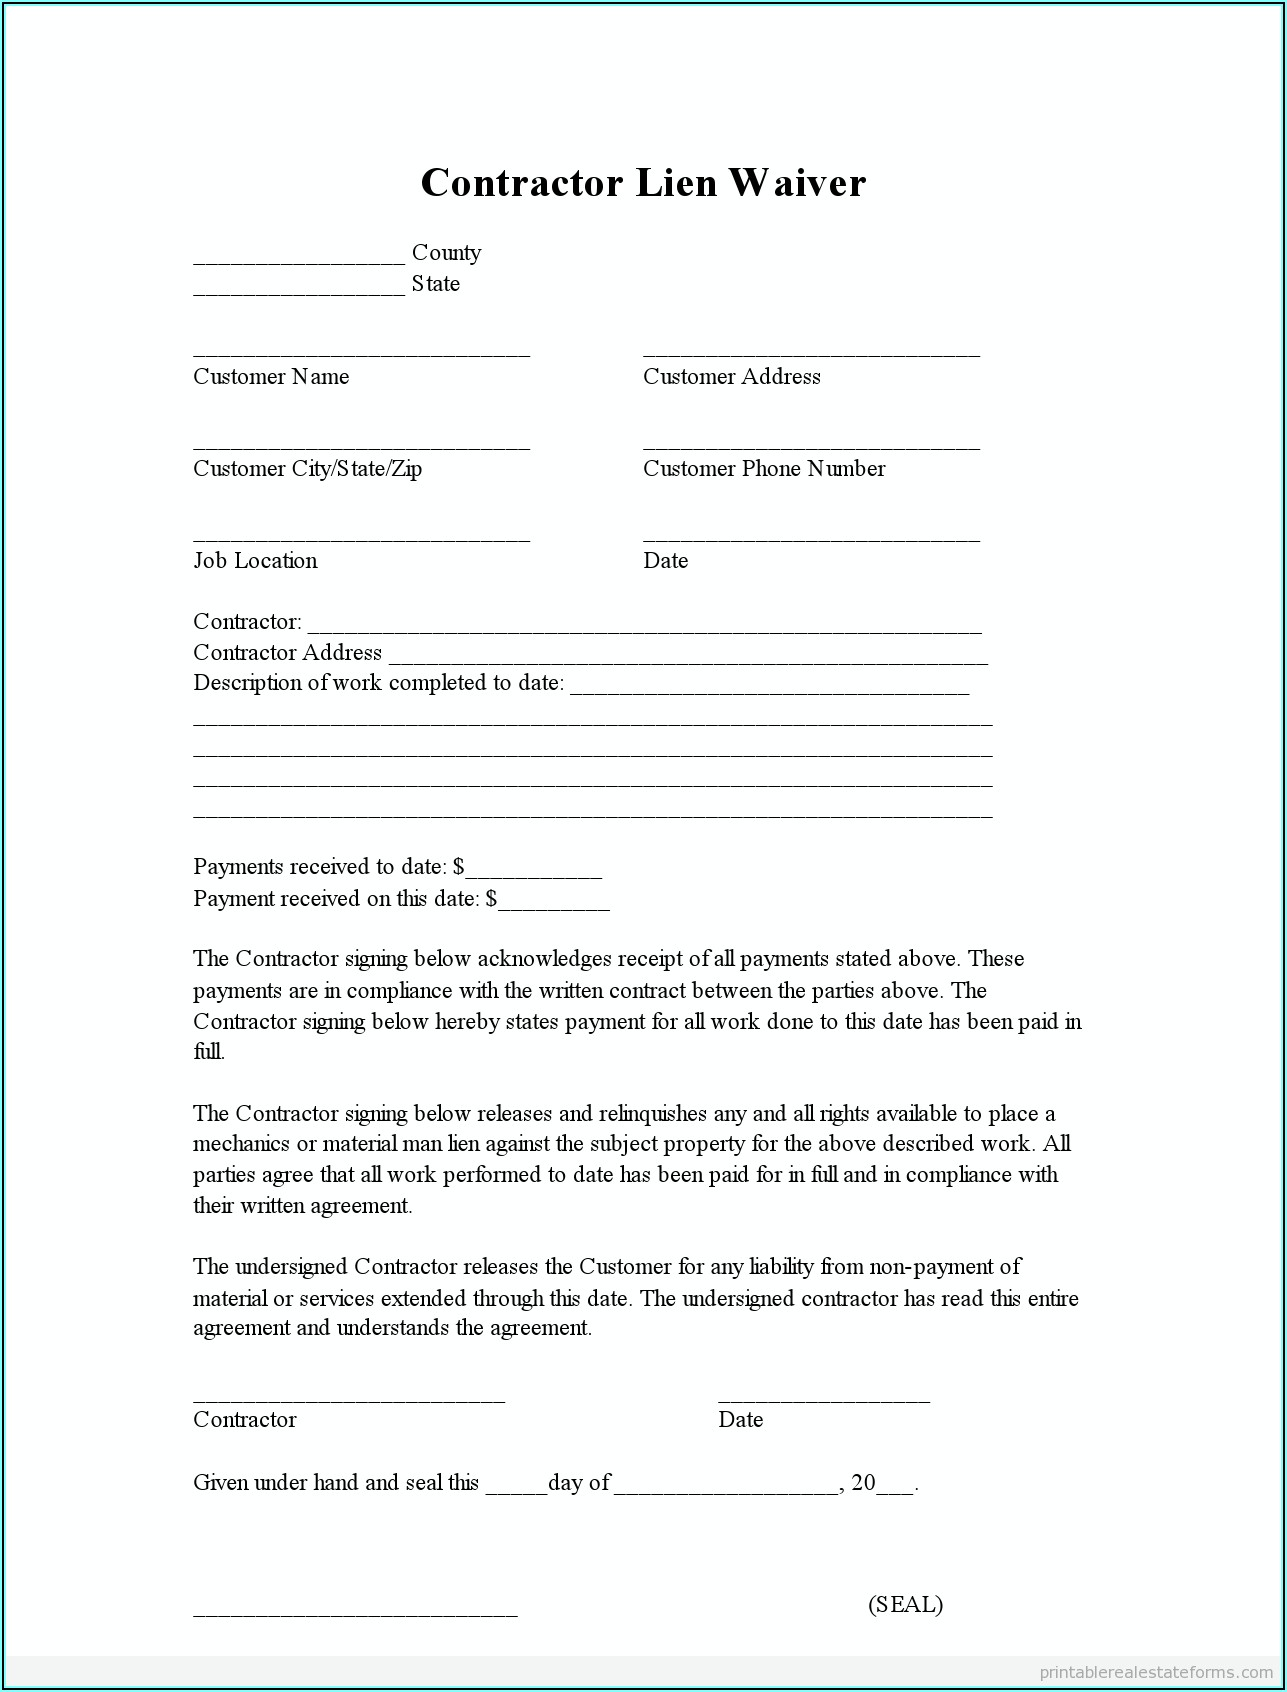 Contractor Lien Forms Free